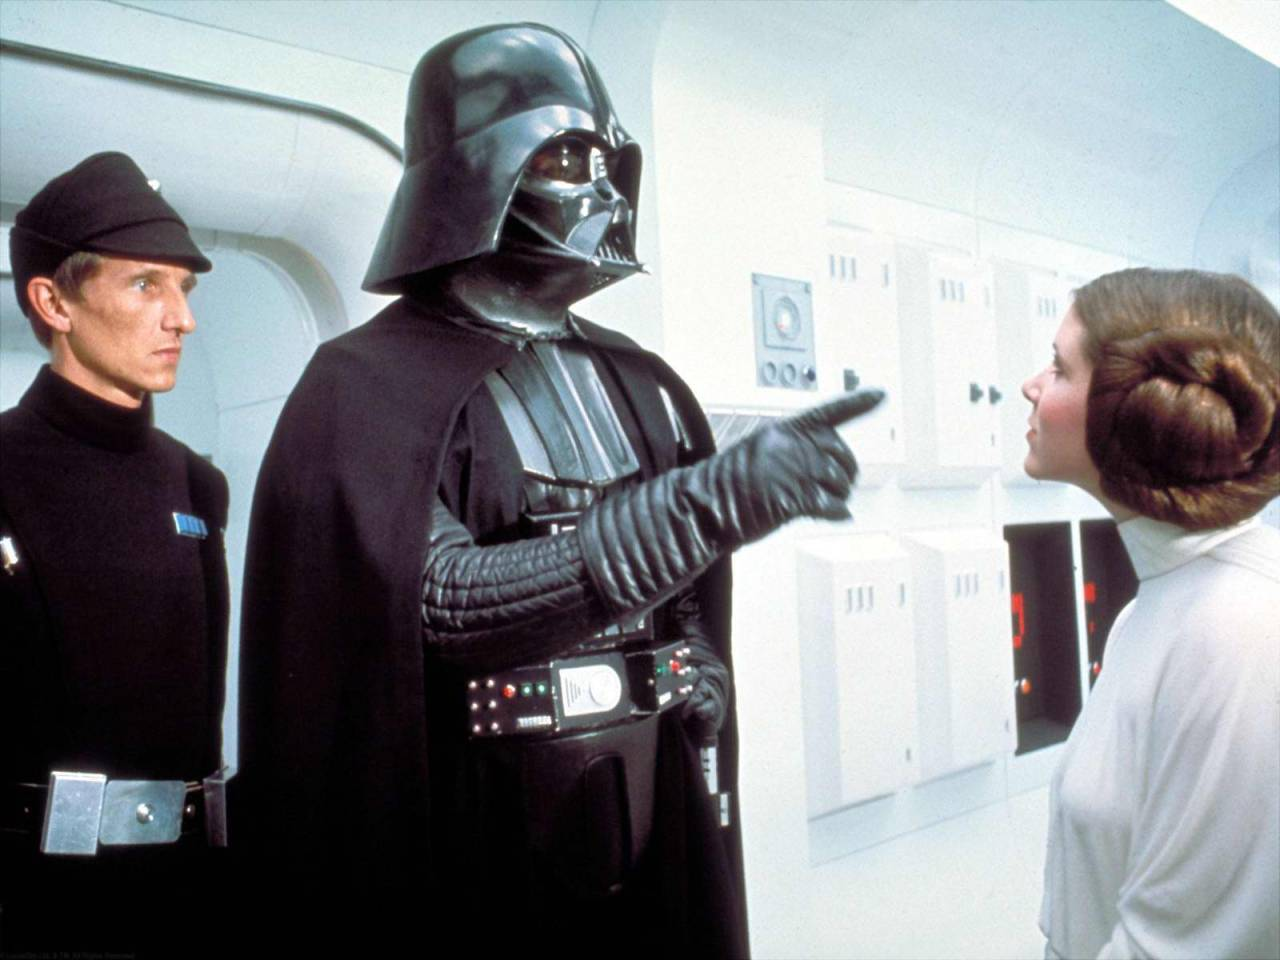 Princess Leia: Darth Vader. Only you could be so bold. The Imperial Senate will not sit still for this. When they hear you've attacked a diplomatic… Darth Vader: Don't act so surprised, Your Highness. You weren't on any mercy mission this time. Several transmissions were beamed to this ship by rebel spies. I want to know what happened to the plans they sent you. Princess Leia: I don't know what you're talking about. I am a member of the Imperial Senate on a diplomatic mission to Alderaan… Darth Vader: You are part of the Rebel Alliance and a traitor! Take her away!